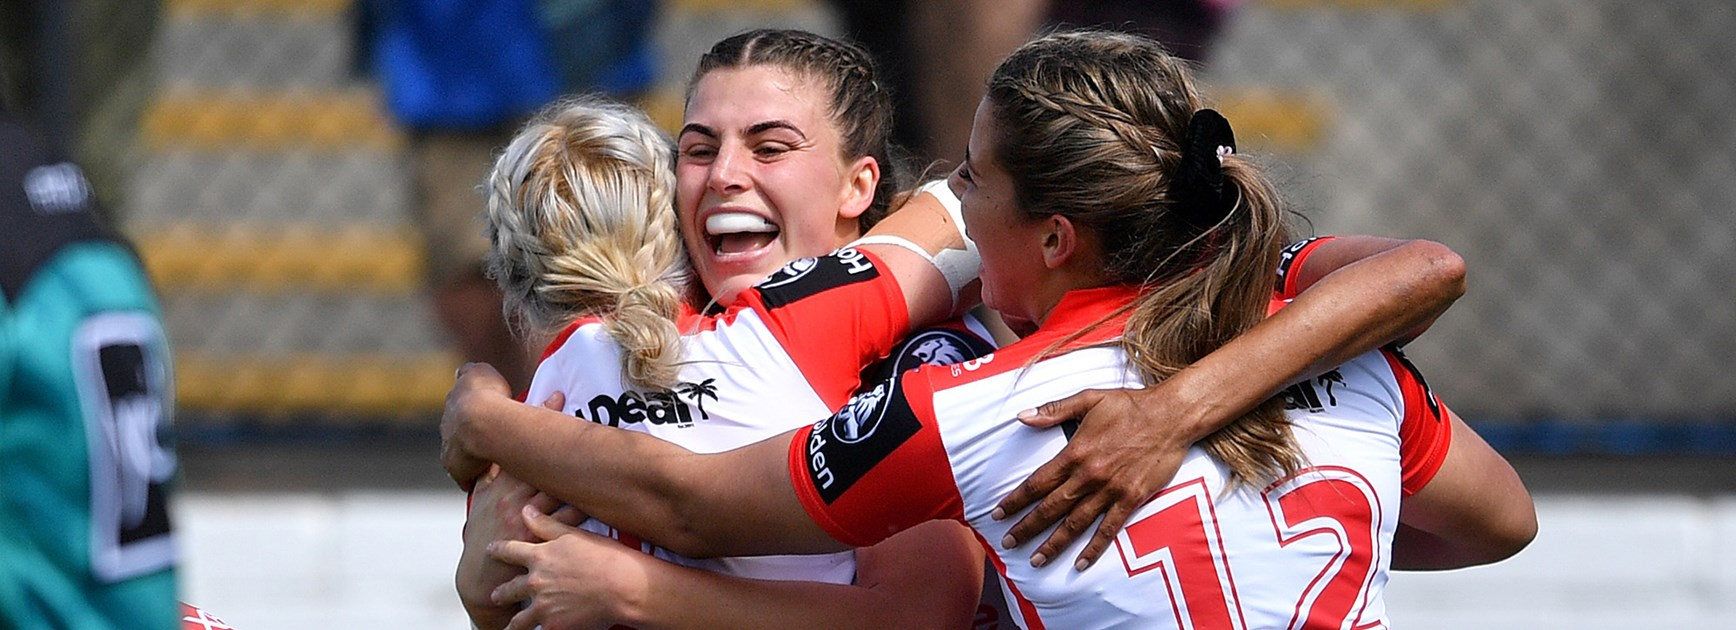 NRLW match highlights: Round 3 v Roosters